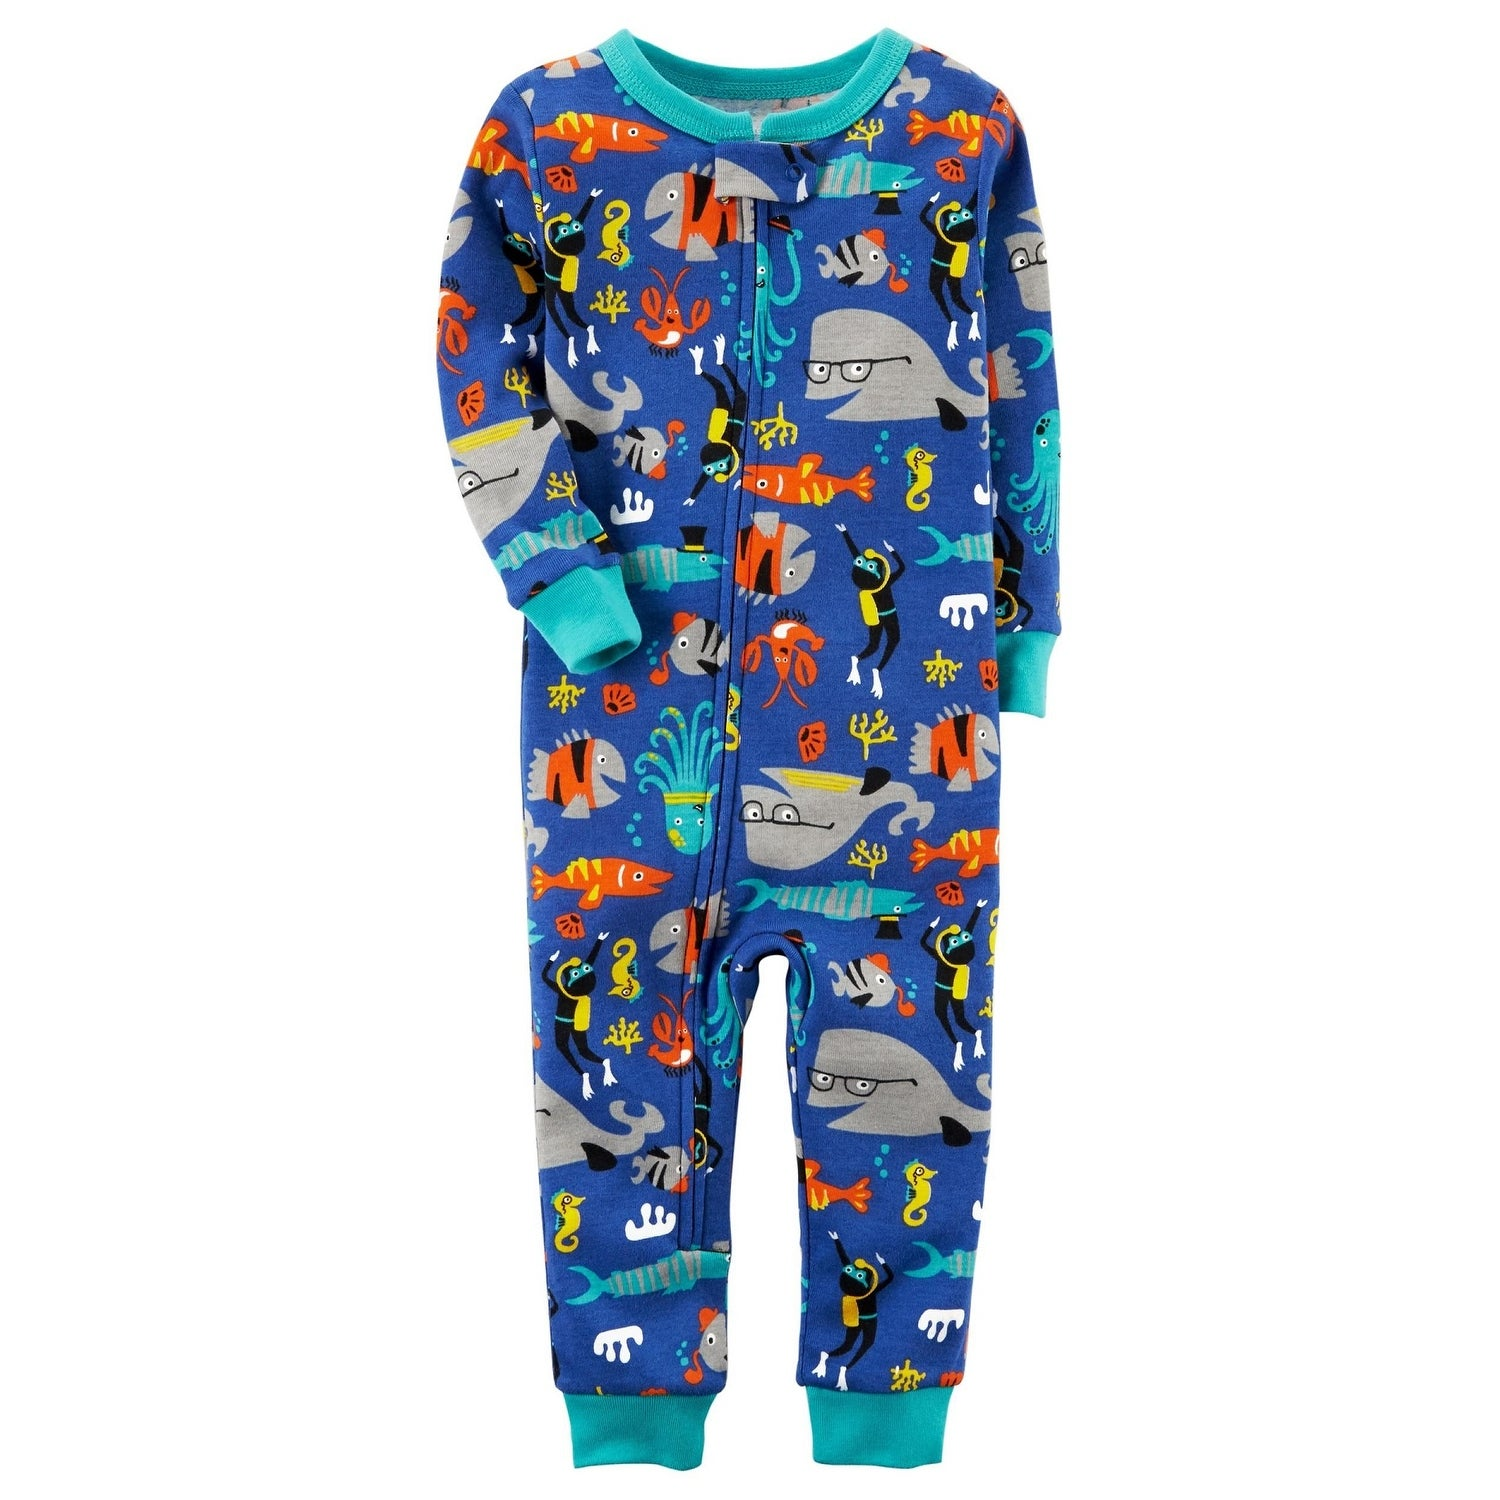 49cb9d979 Shop Carter s Baby Boys  1-Piece Fish Snug Fit Cotton Footless PJs ...